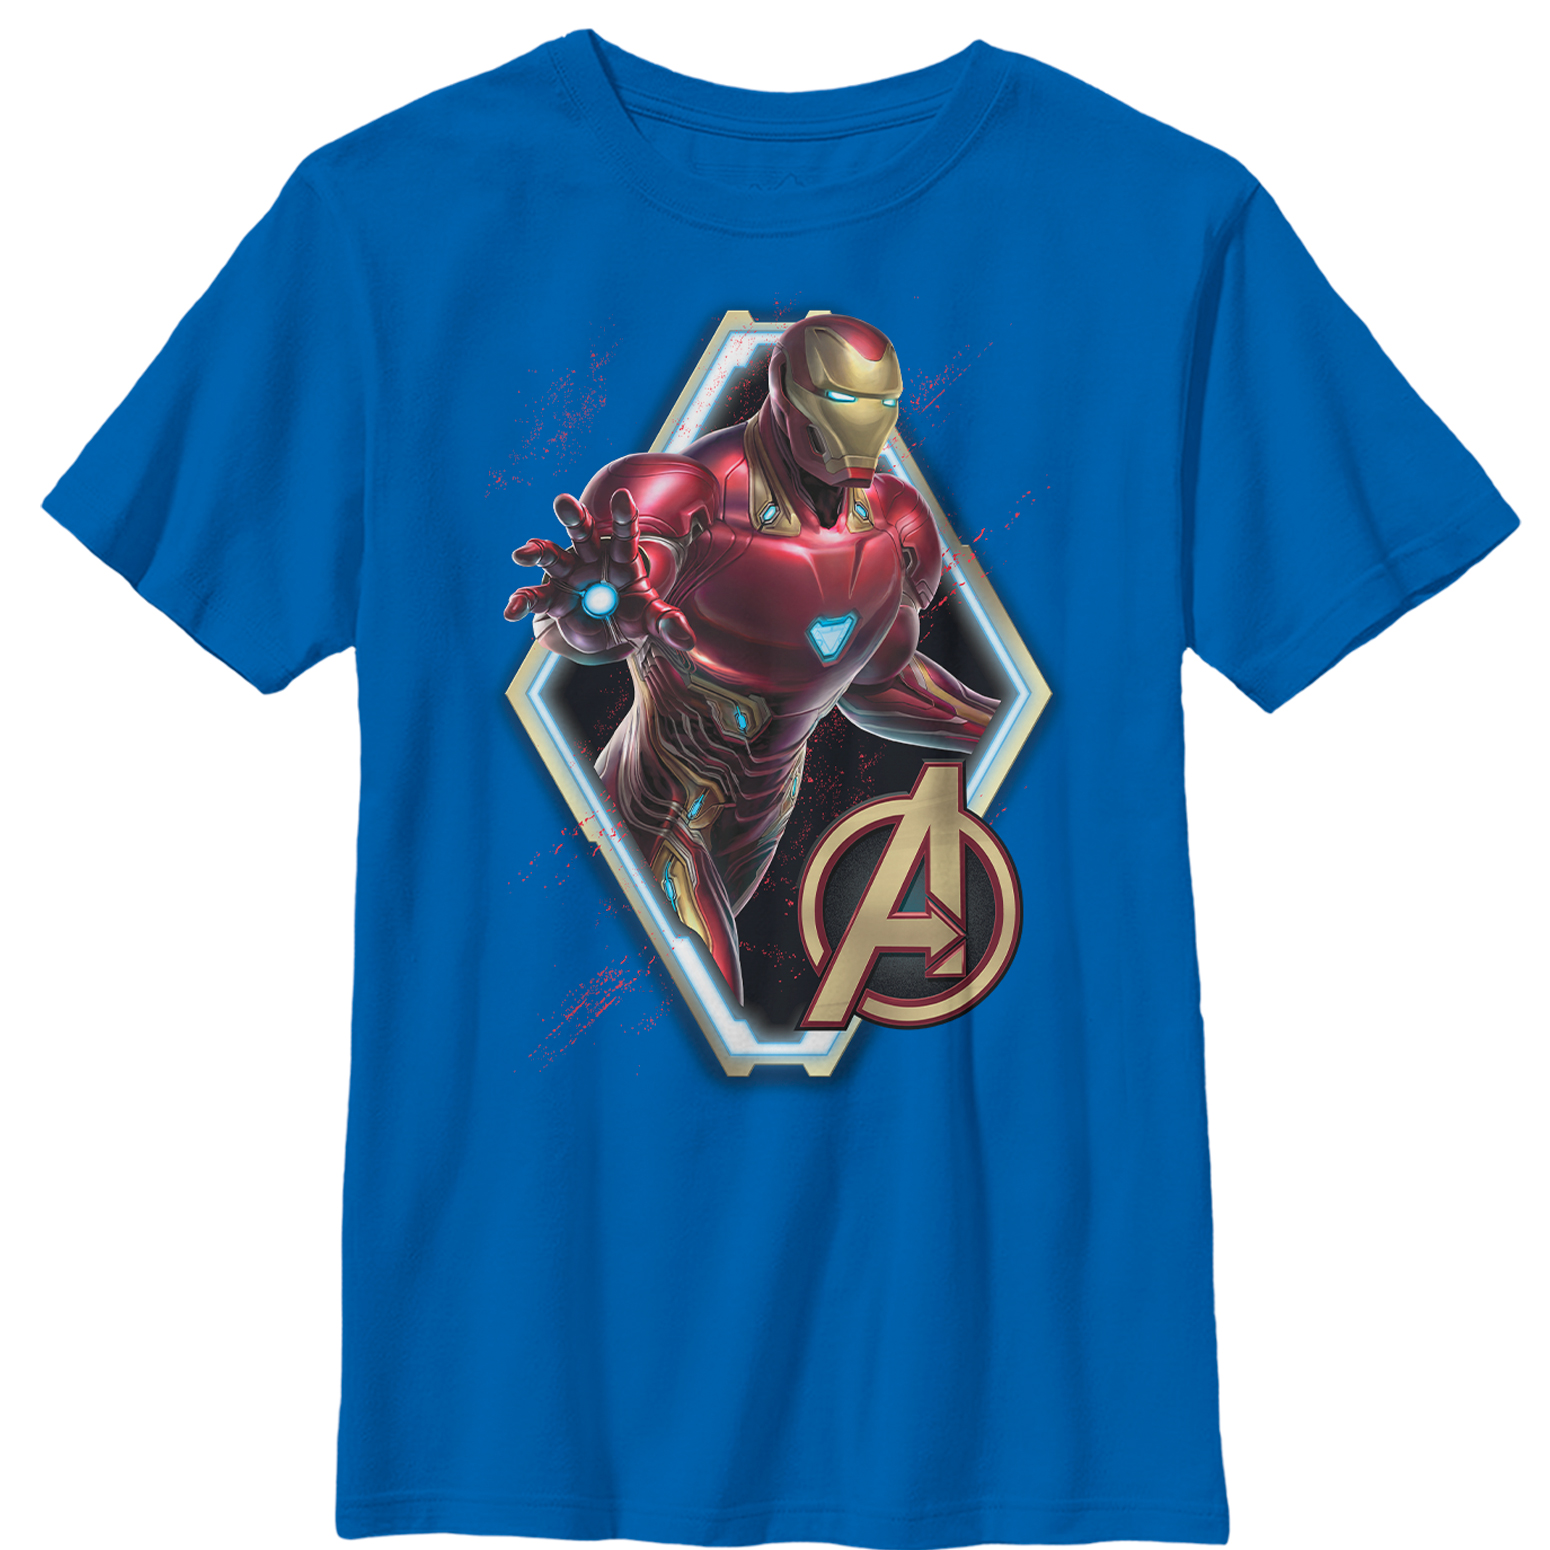 Marvel Boys' Avengers: Endgame Iron Man Frame T-Shirt